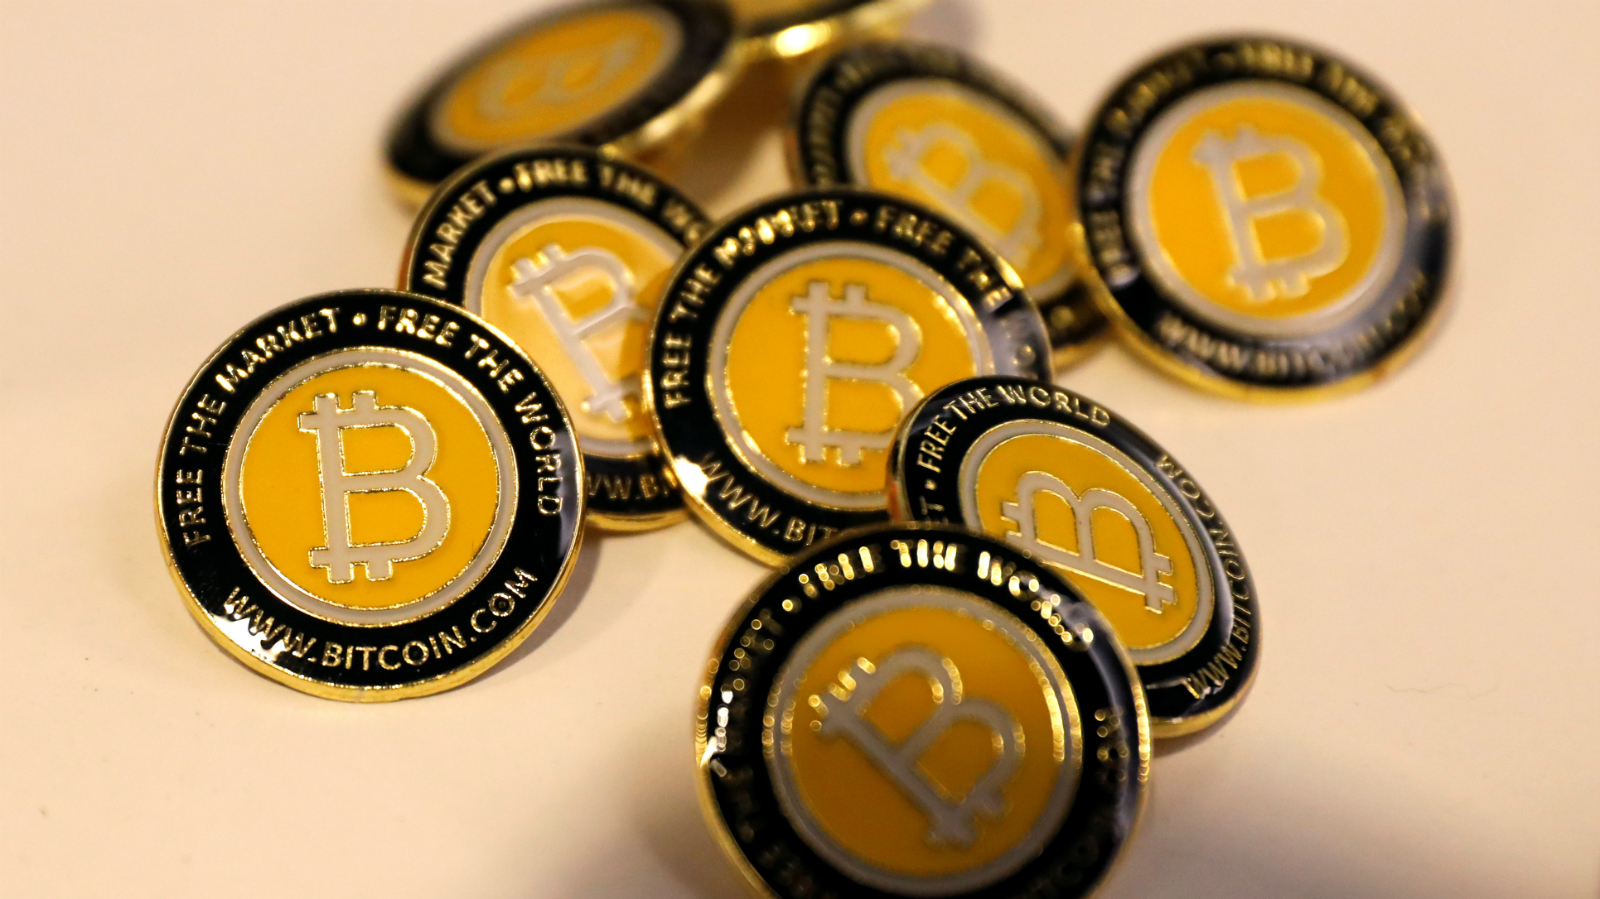 Nanoledger Support Bitcoin Gold Bitcoin Apeer To – Lord of